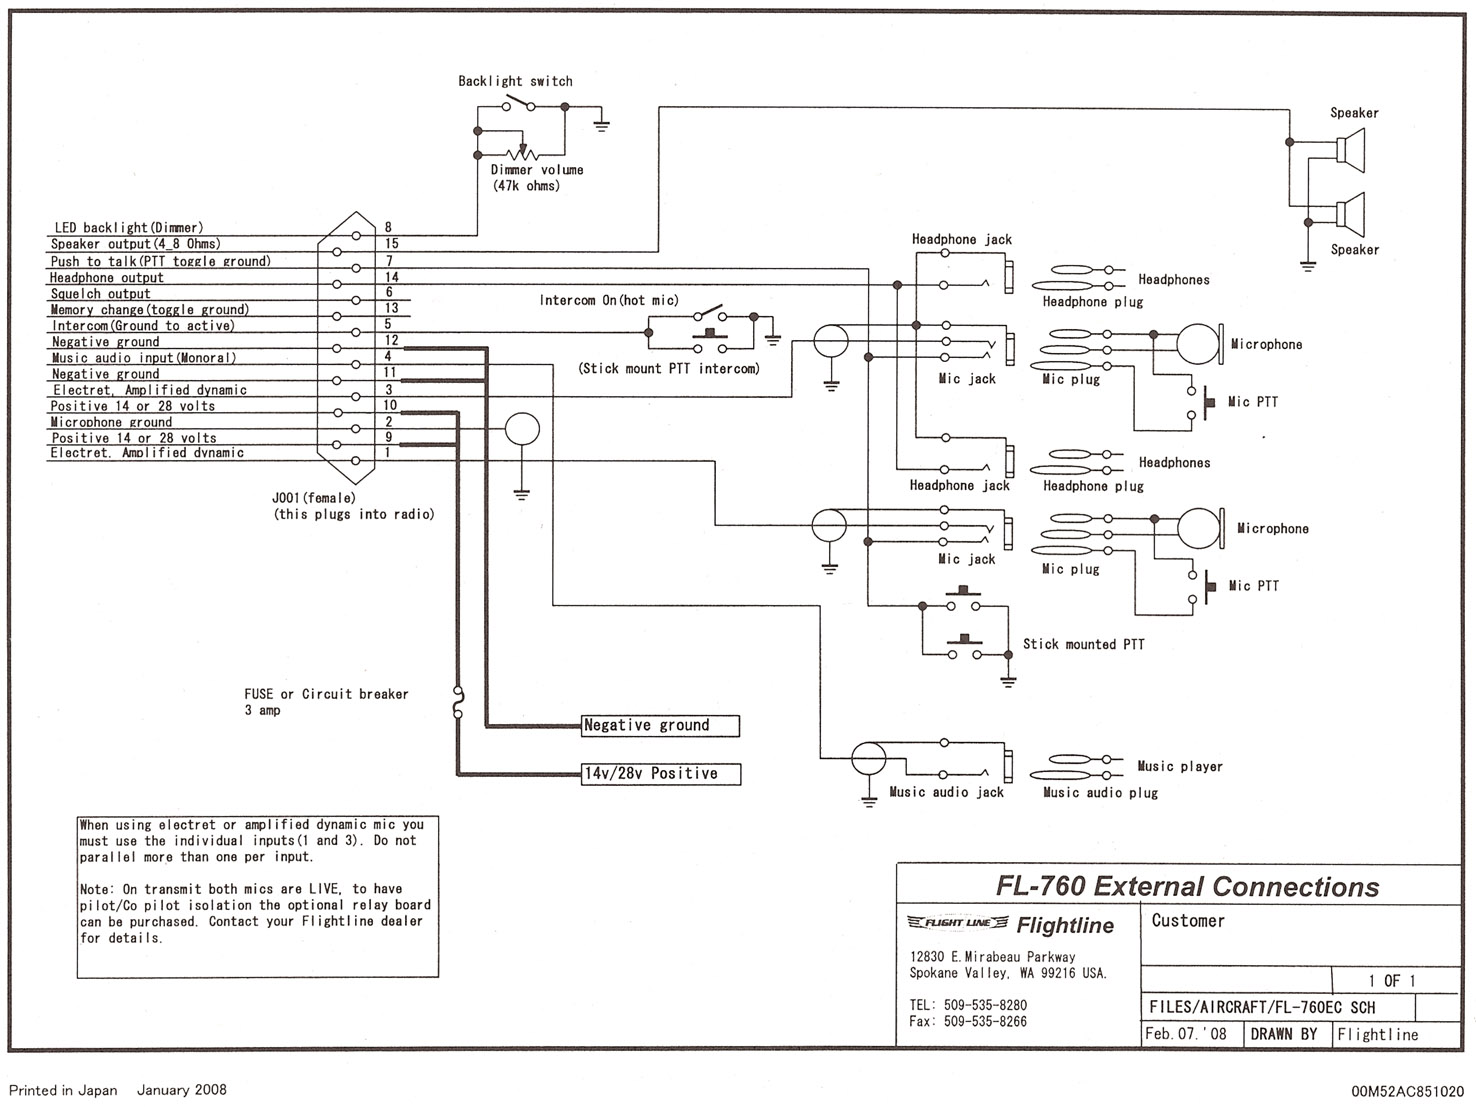 skytronics alternator wiring diagram & pirate4x4 com the largest off jasco  alternator wiring diagram aircraft skytronics